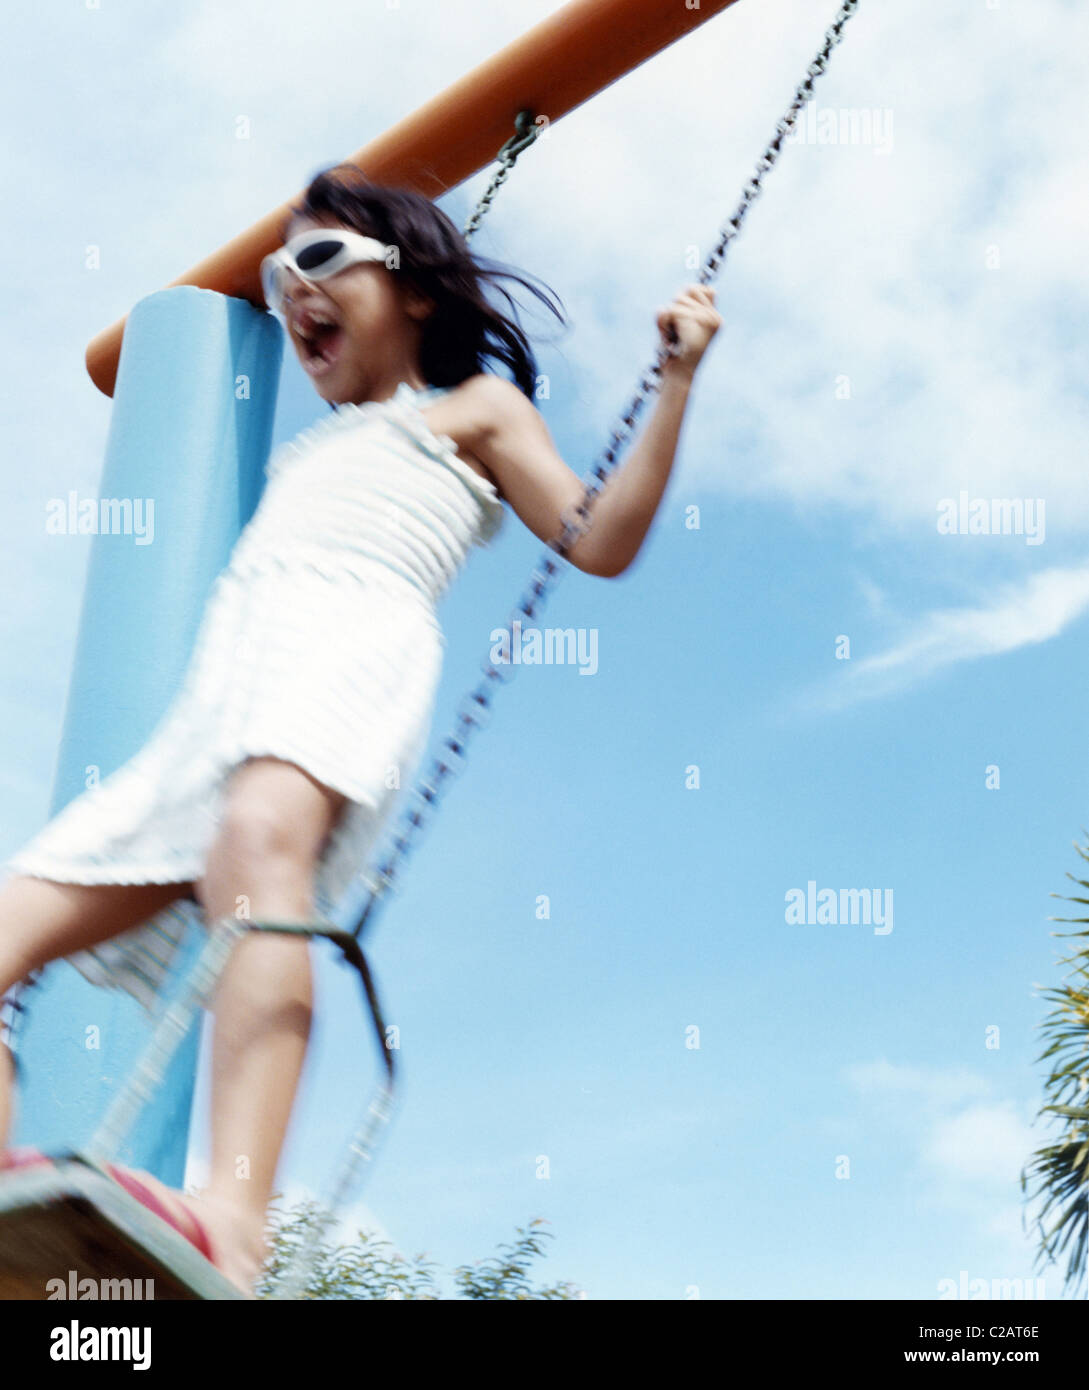 Girl playing on swing, low angle view Photo Stock